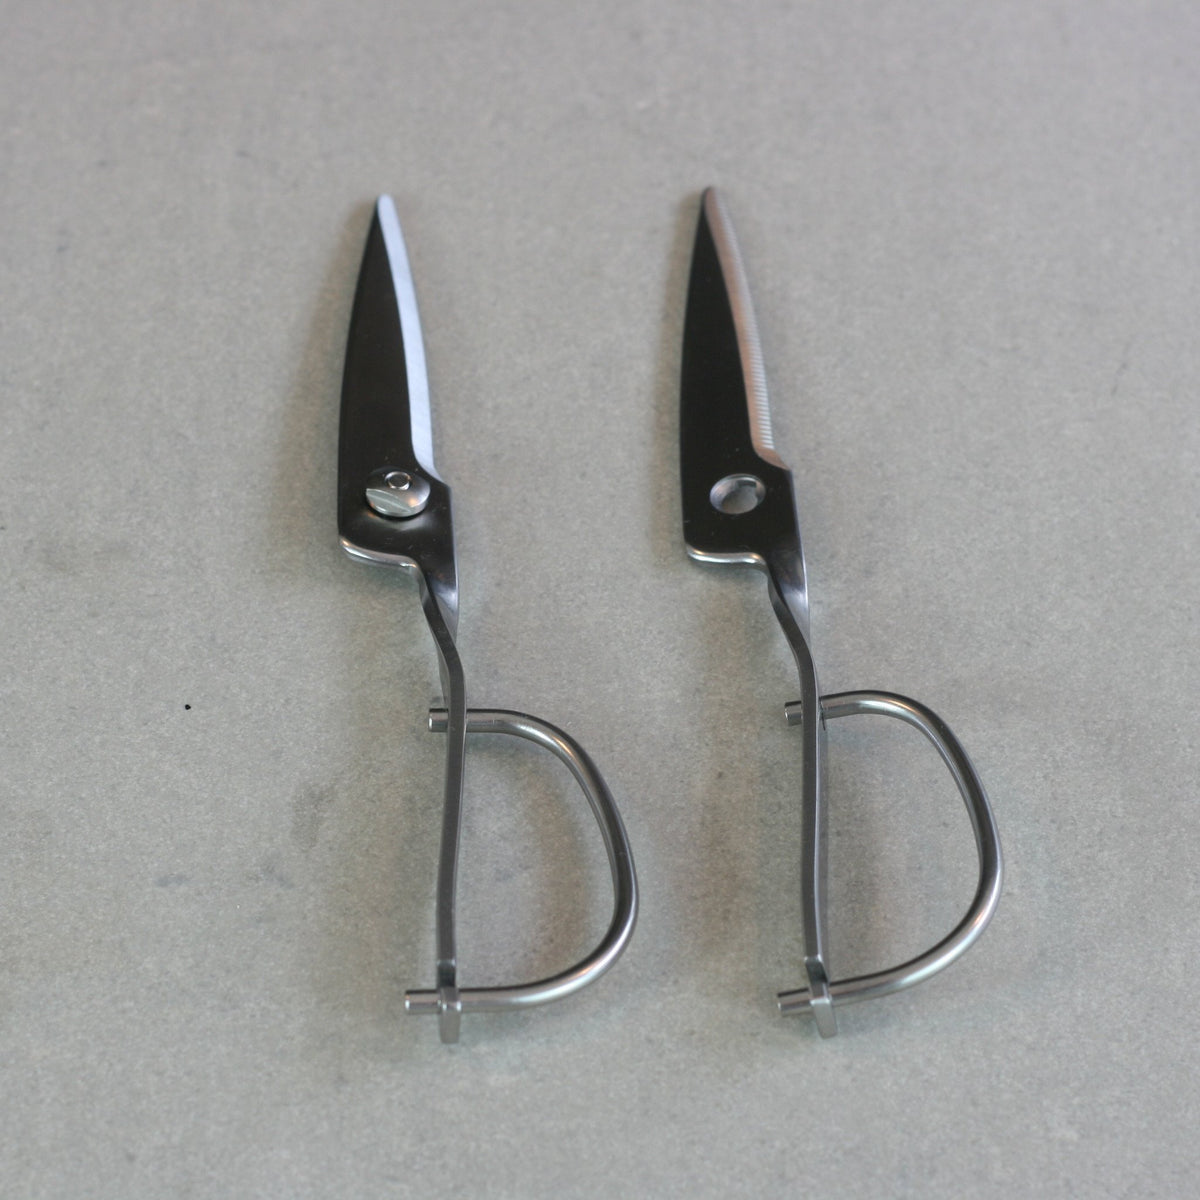 Japanese kitchen scissors - mark II